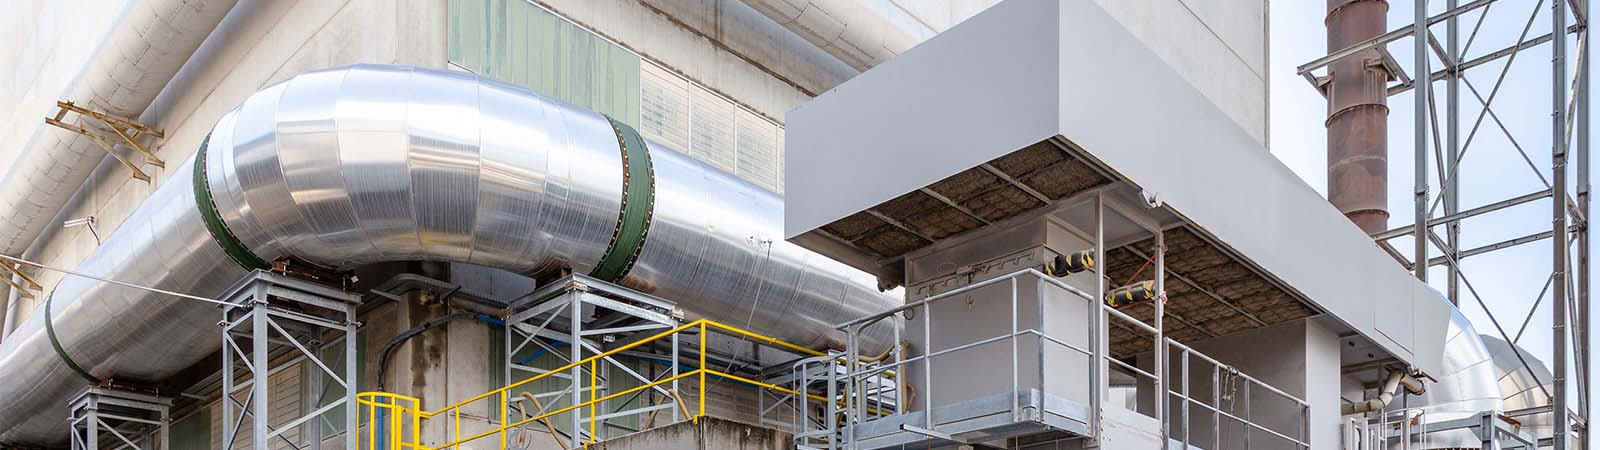 Ceramica Piemme of Solignano invests in SACMI cogeneration systems